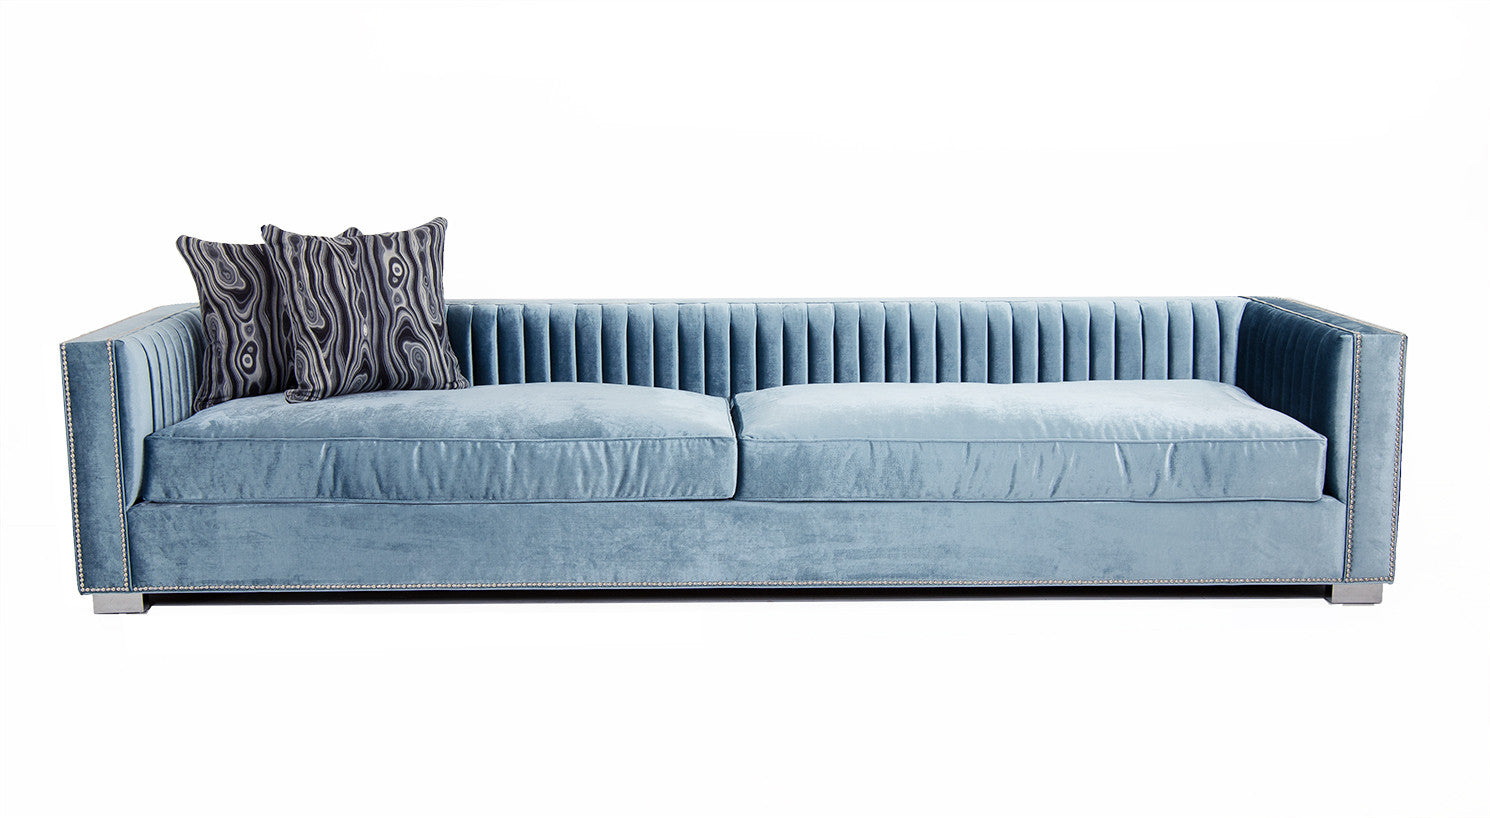 Acapulco Sofa In Trend Denim Velvet Modshop